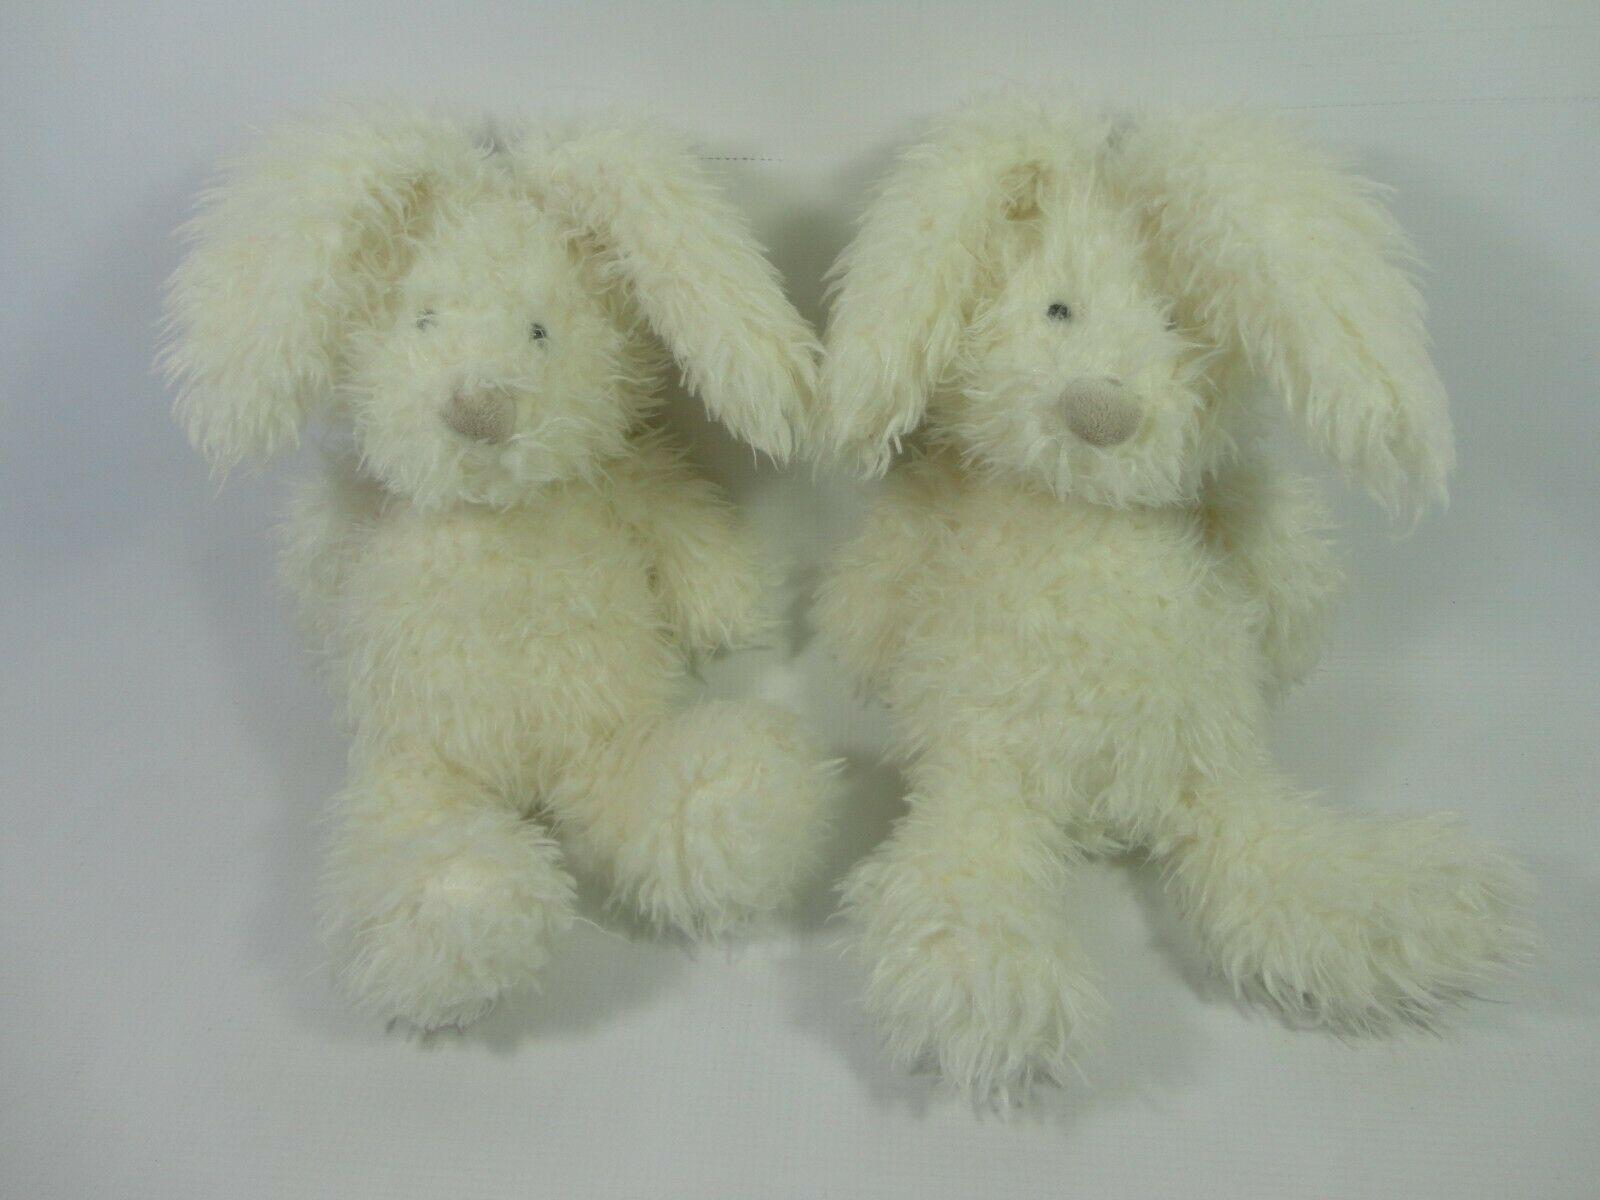 2 x Jellycat Angora Bunny Rabbit White Soft Toy Plush - Easter Jelly Cat RARE